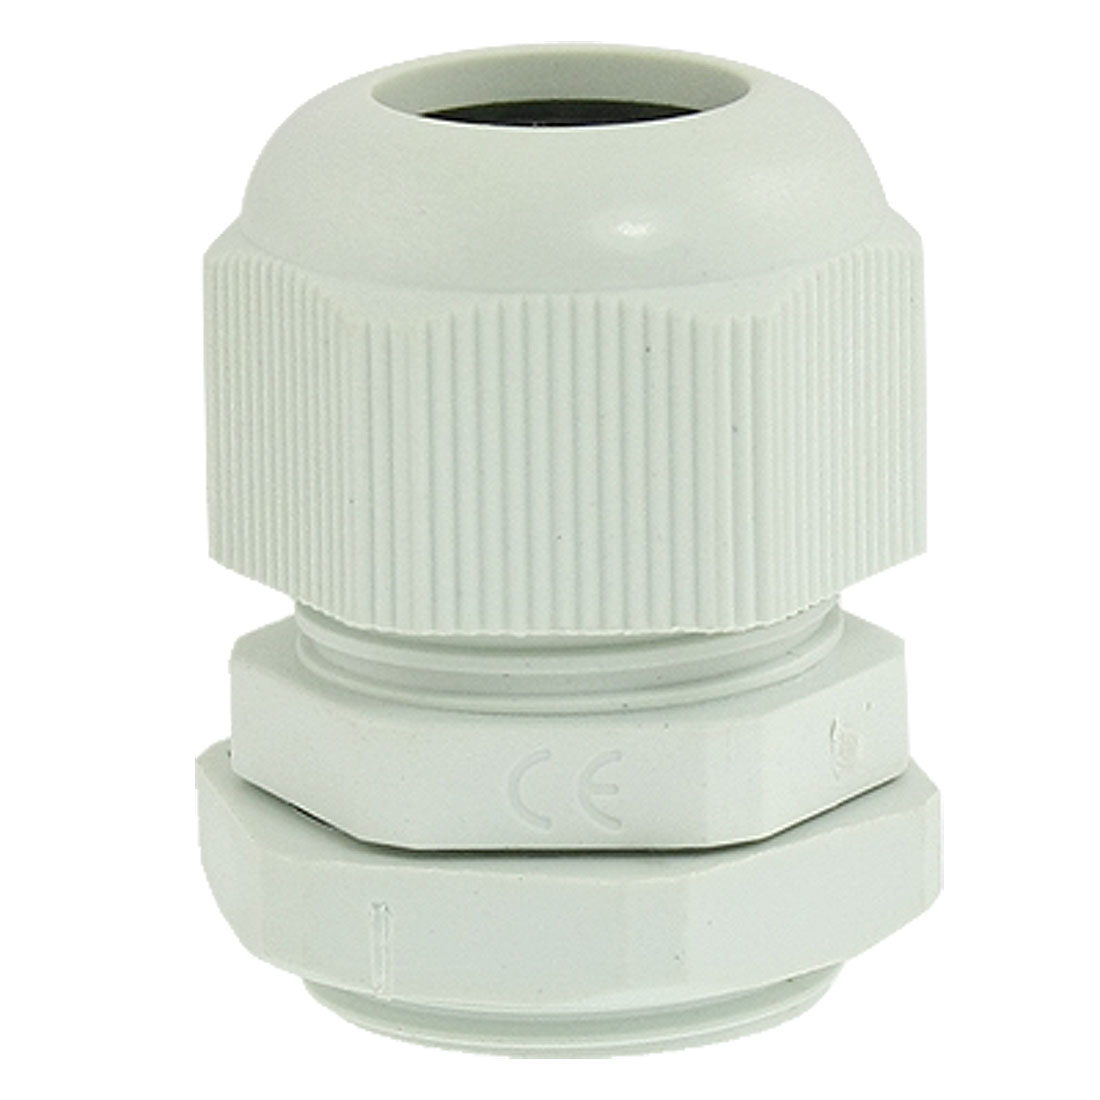 PG16 Gray Plastic Waterproof 10-14mm Diameter Cable Gland Joint